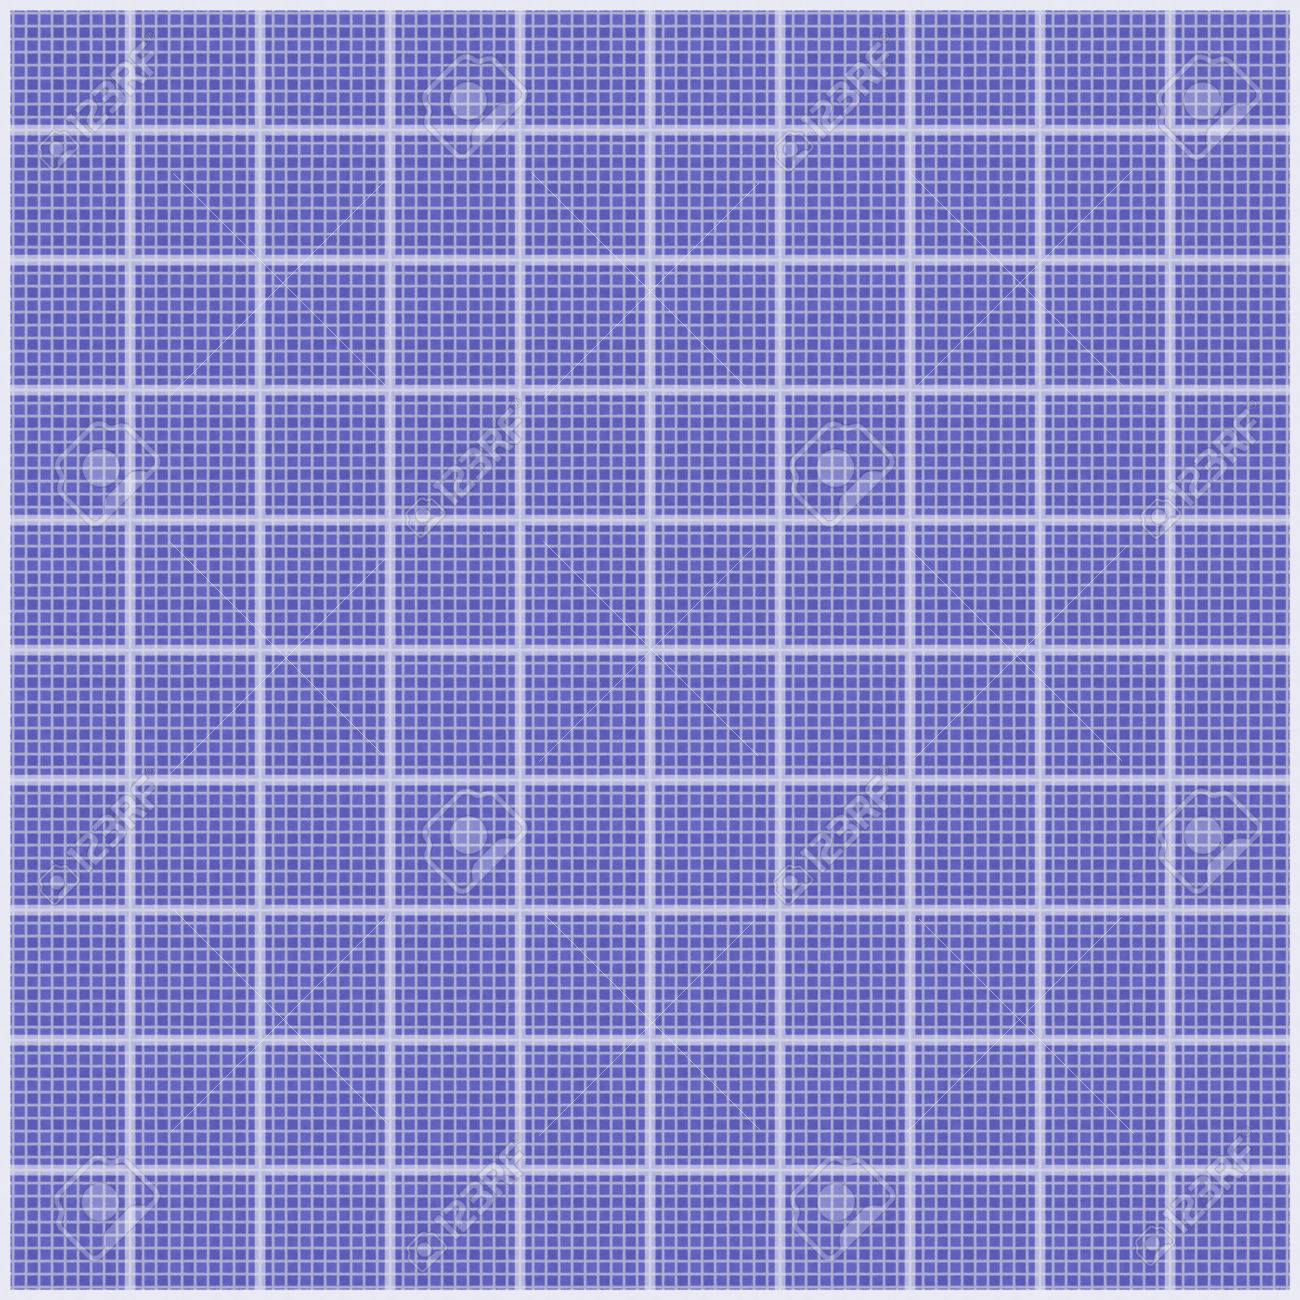 Realistic tileable texture of white grid on blueprint paper stock realistic tileable texture of white grid on blueprint paper stock photo 25473814 malvernweather Image collections